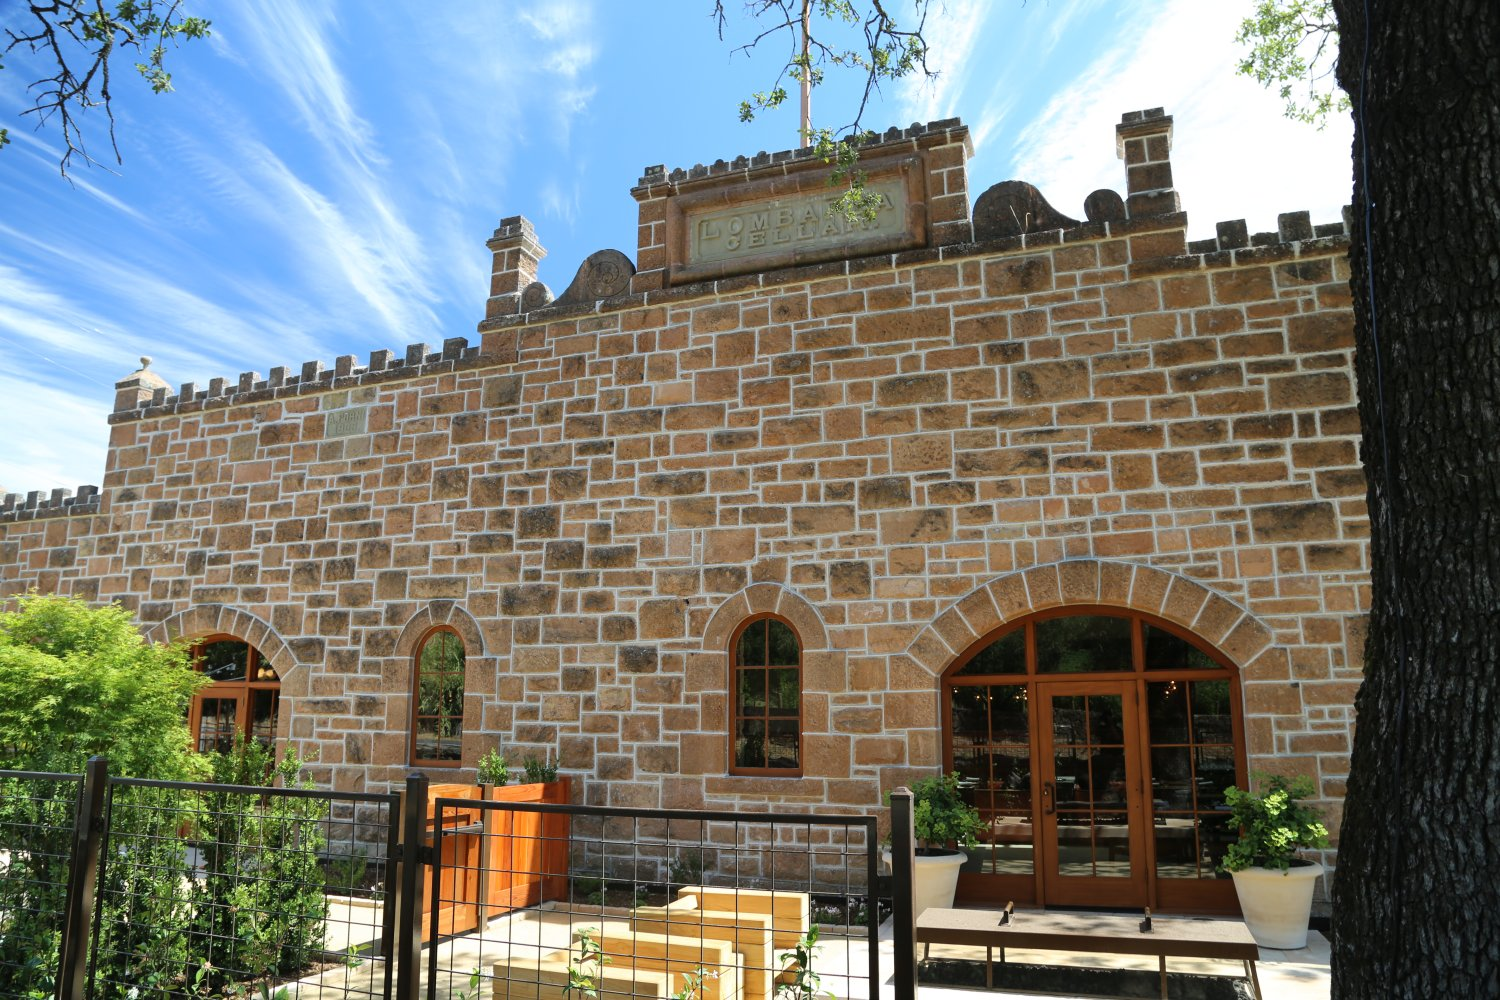 freemark abbey winery case study The freemark abbey, at 3022 st helena highway, had its grand reopening last saturday, permitting the public its first real look at what's been going on behind the historic stone.